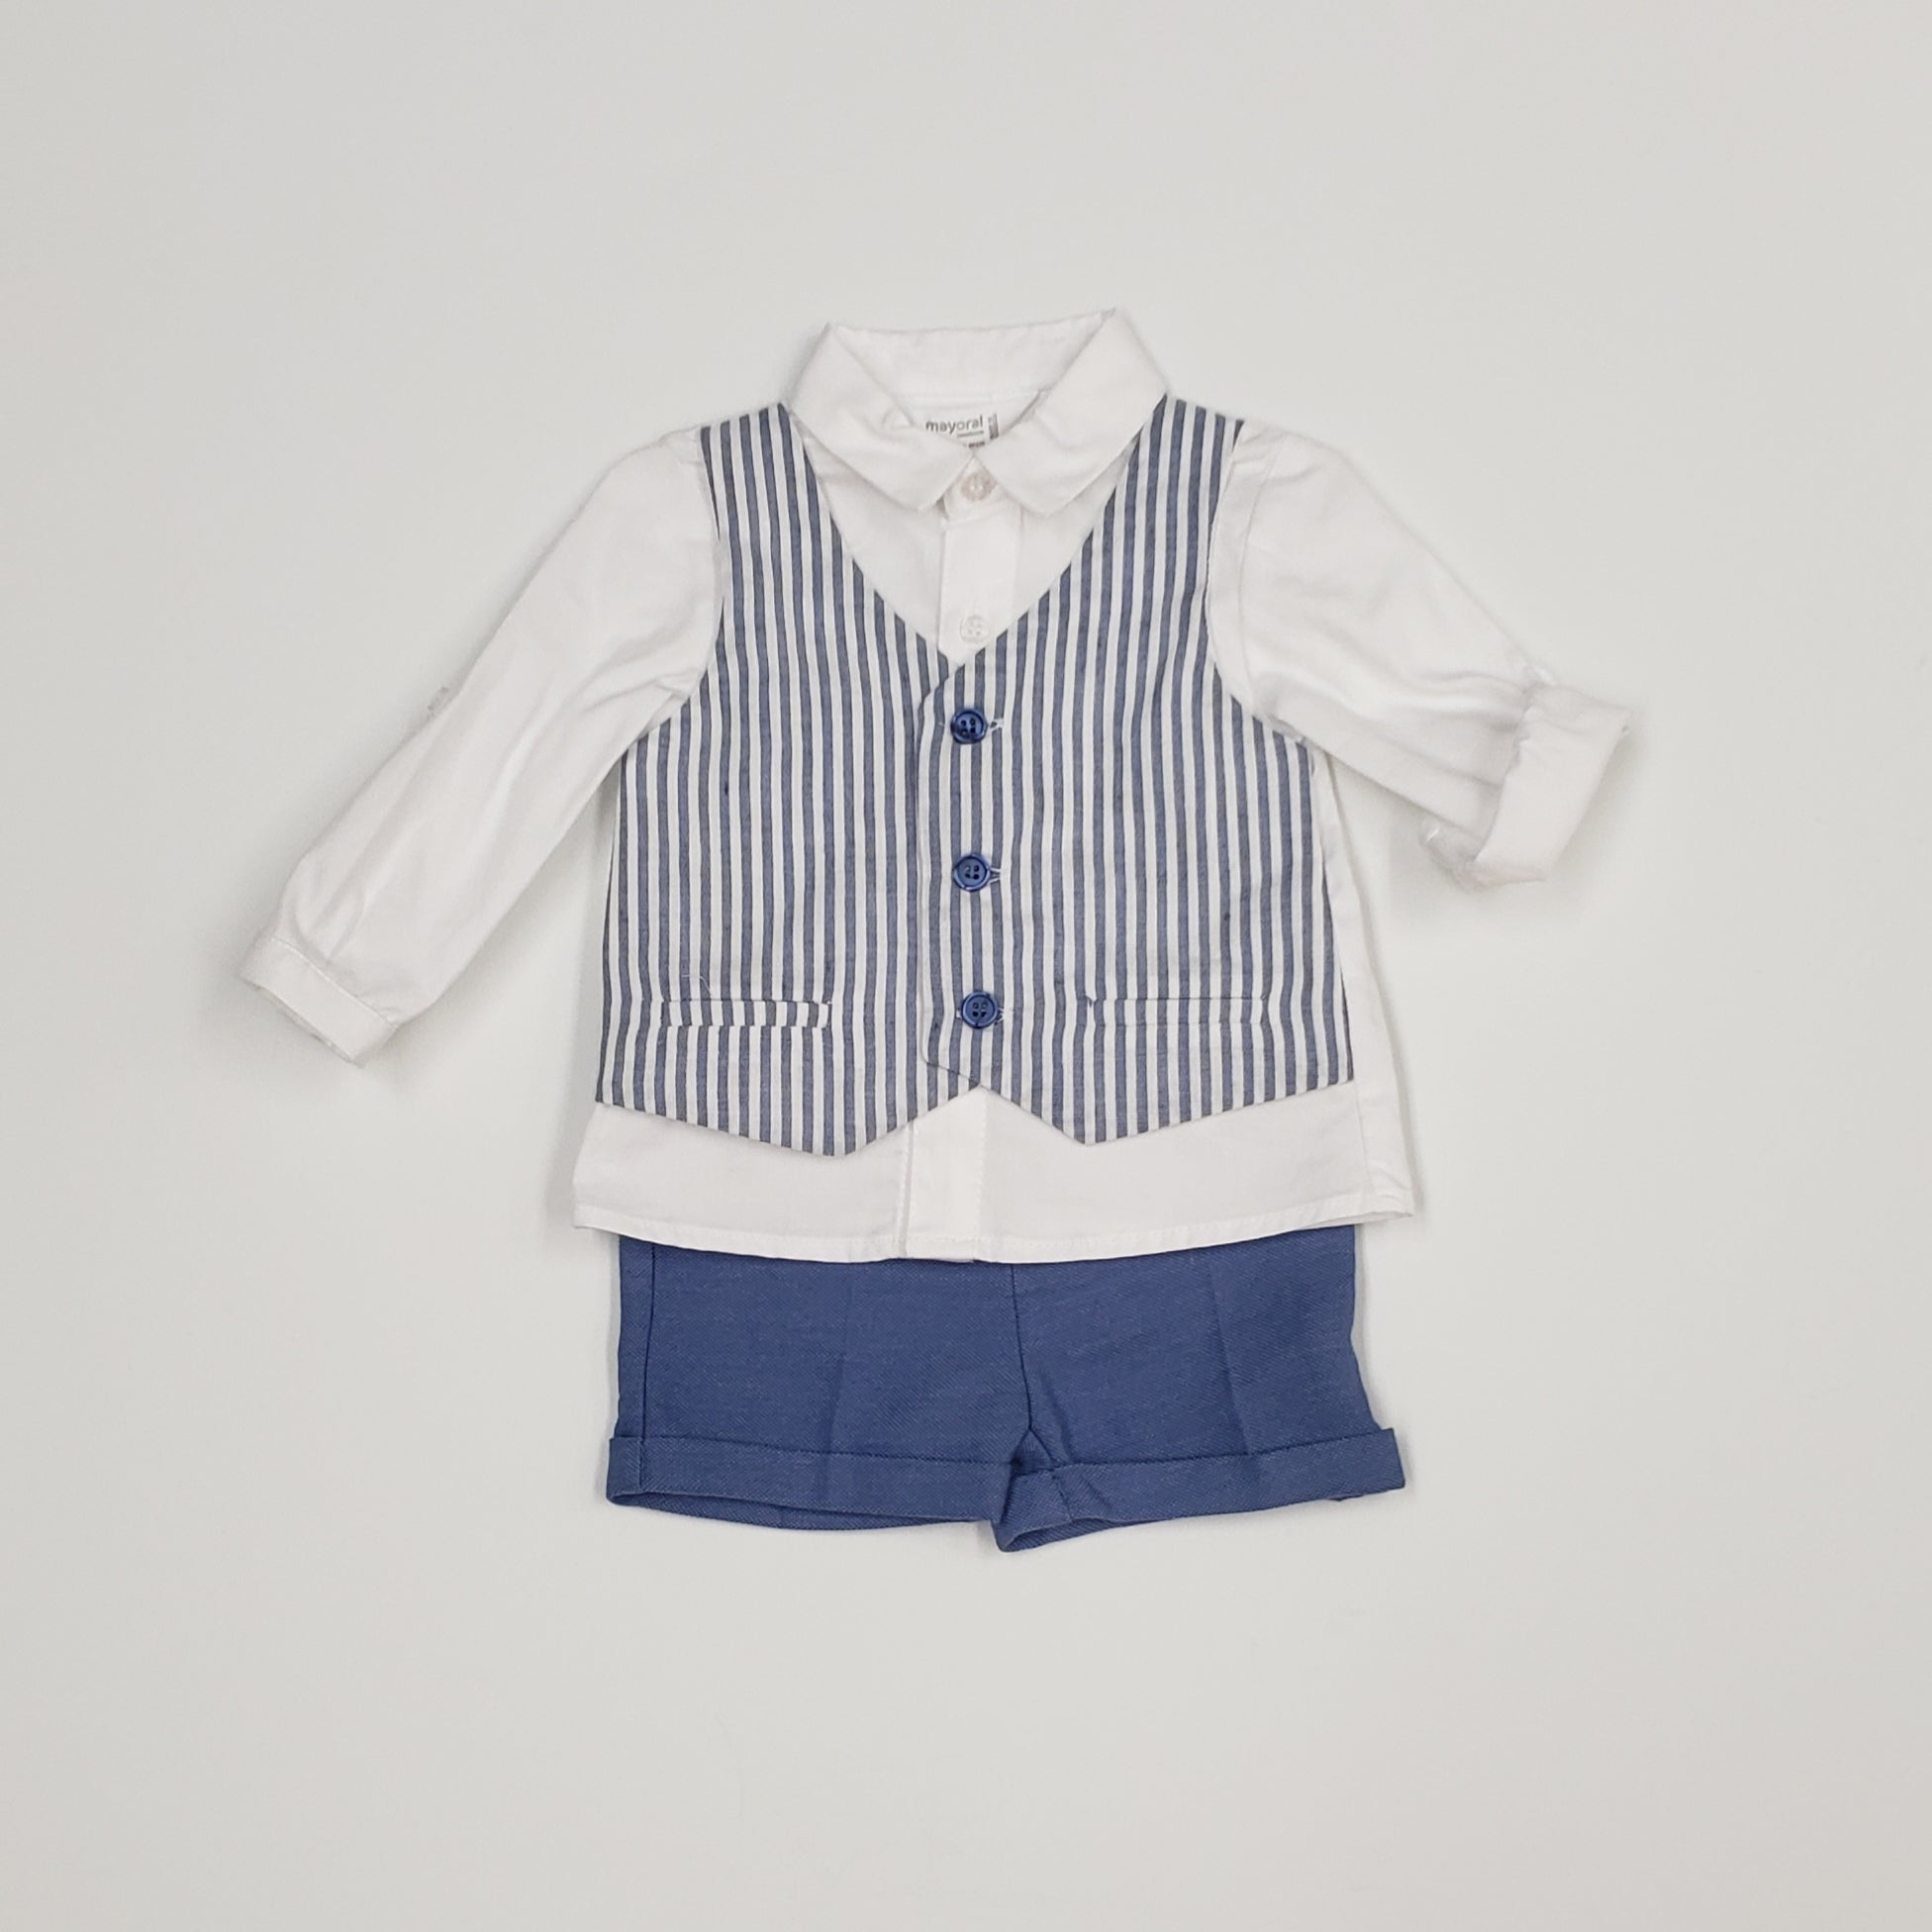 Mayoral 2-Piece Cotton/Linen Boys Set